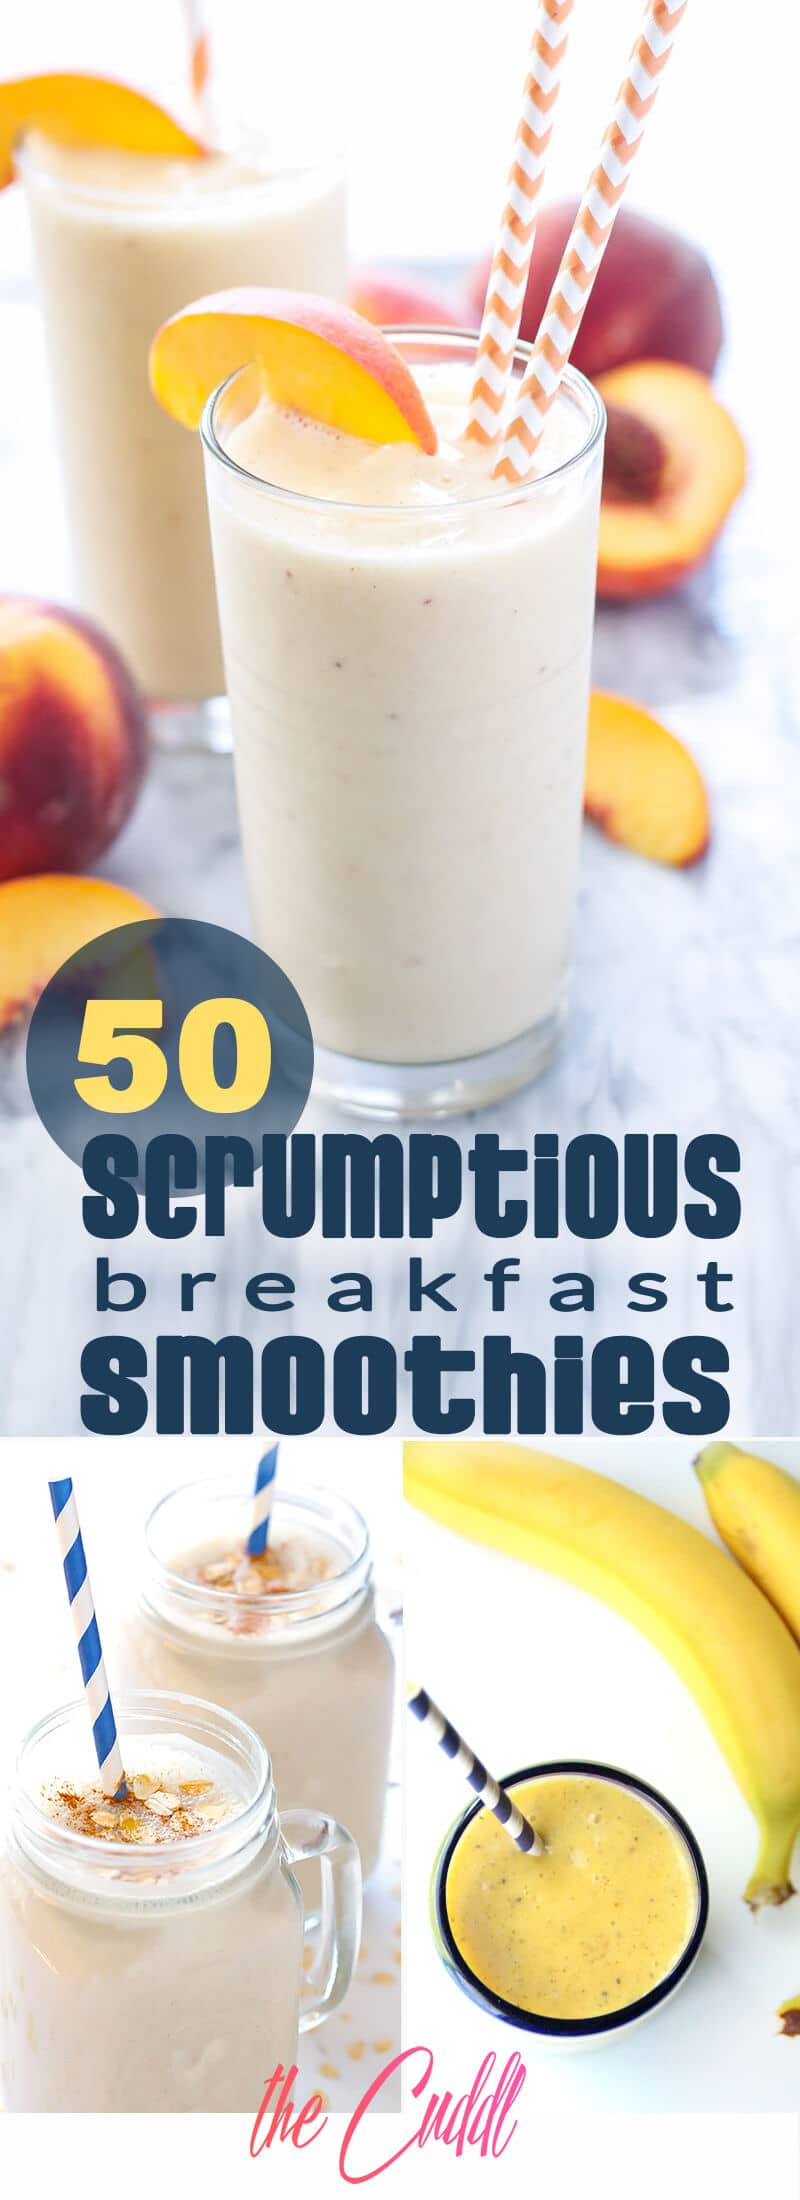 50 Breakfast Smoothie Recipes for a Delightfully Smooth Day